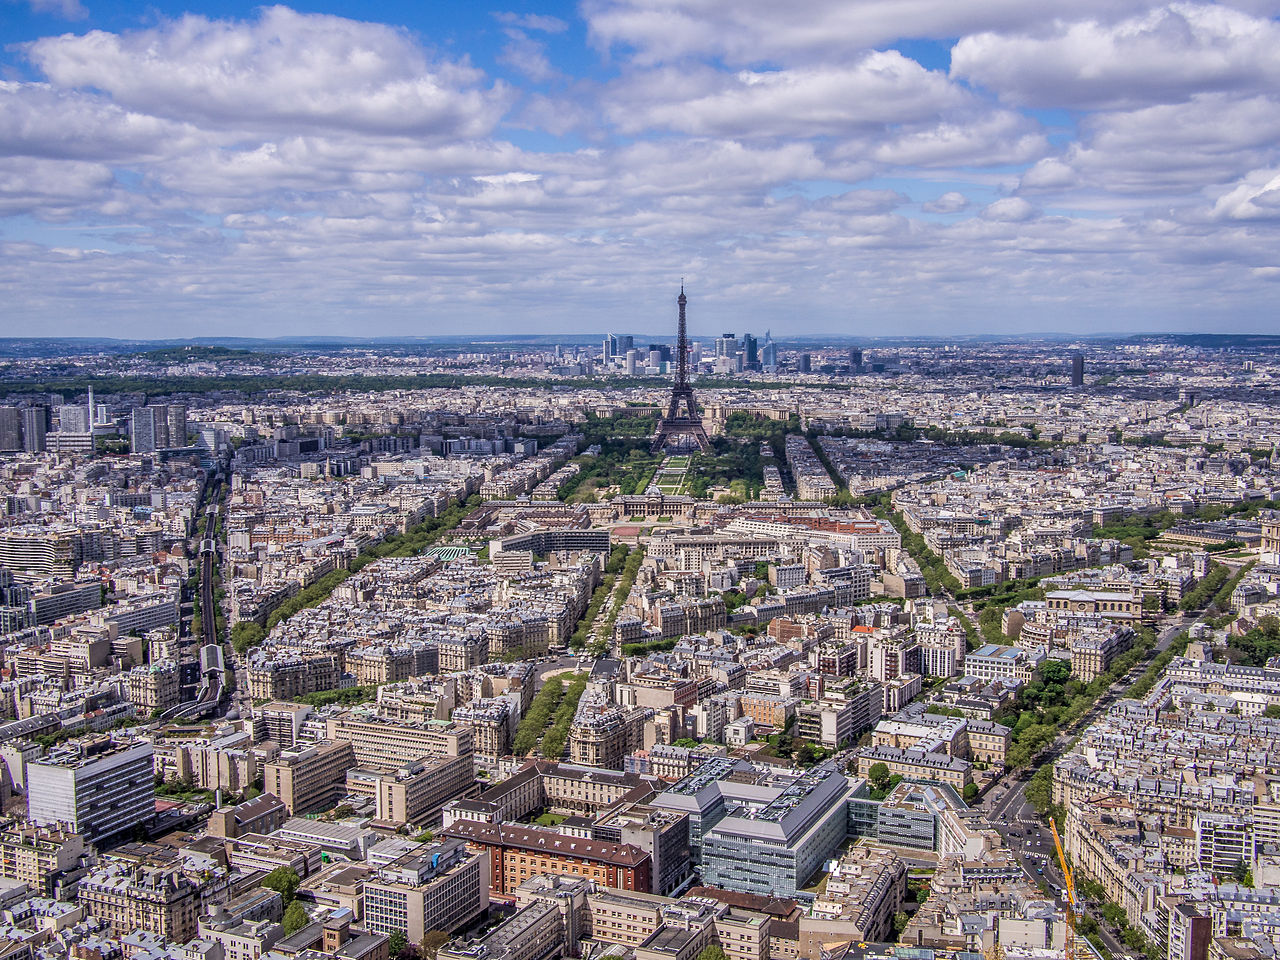 Eiffel Tower from Tour Montparnasse